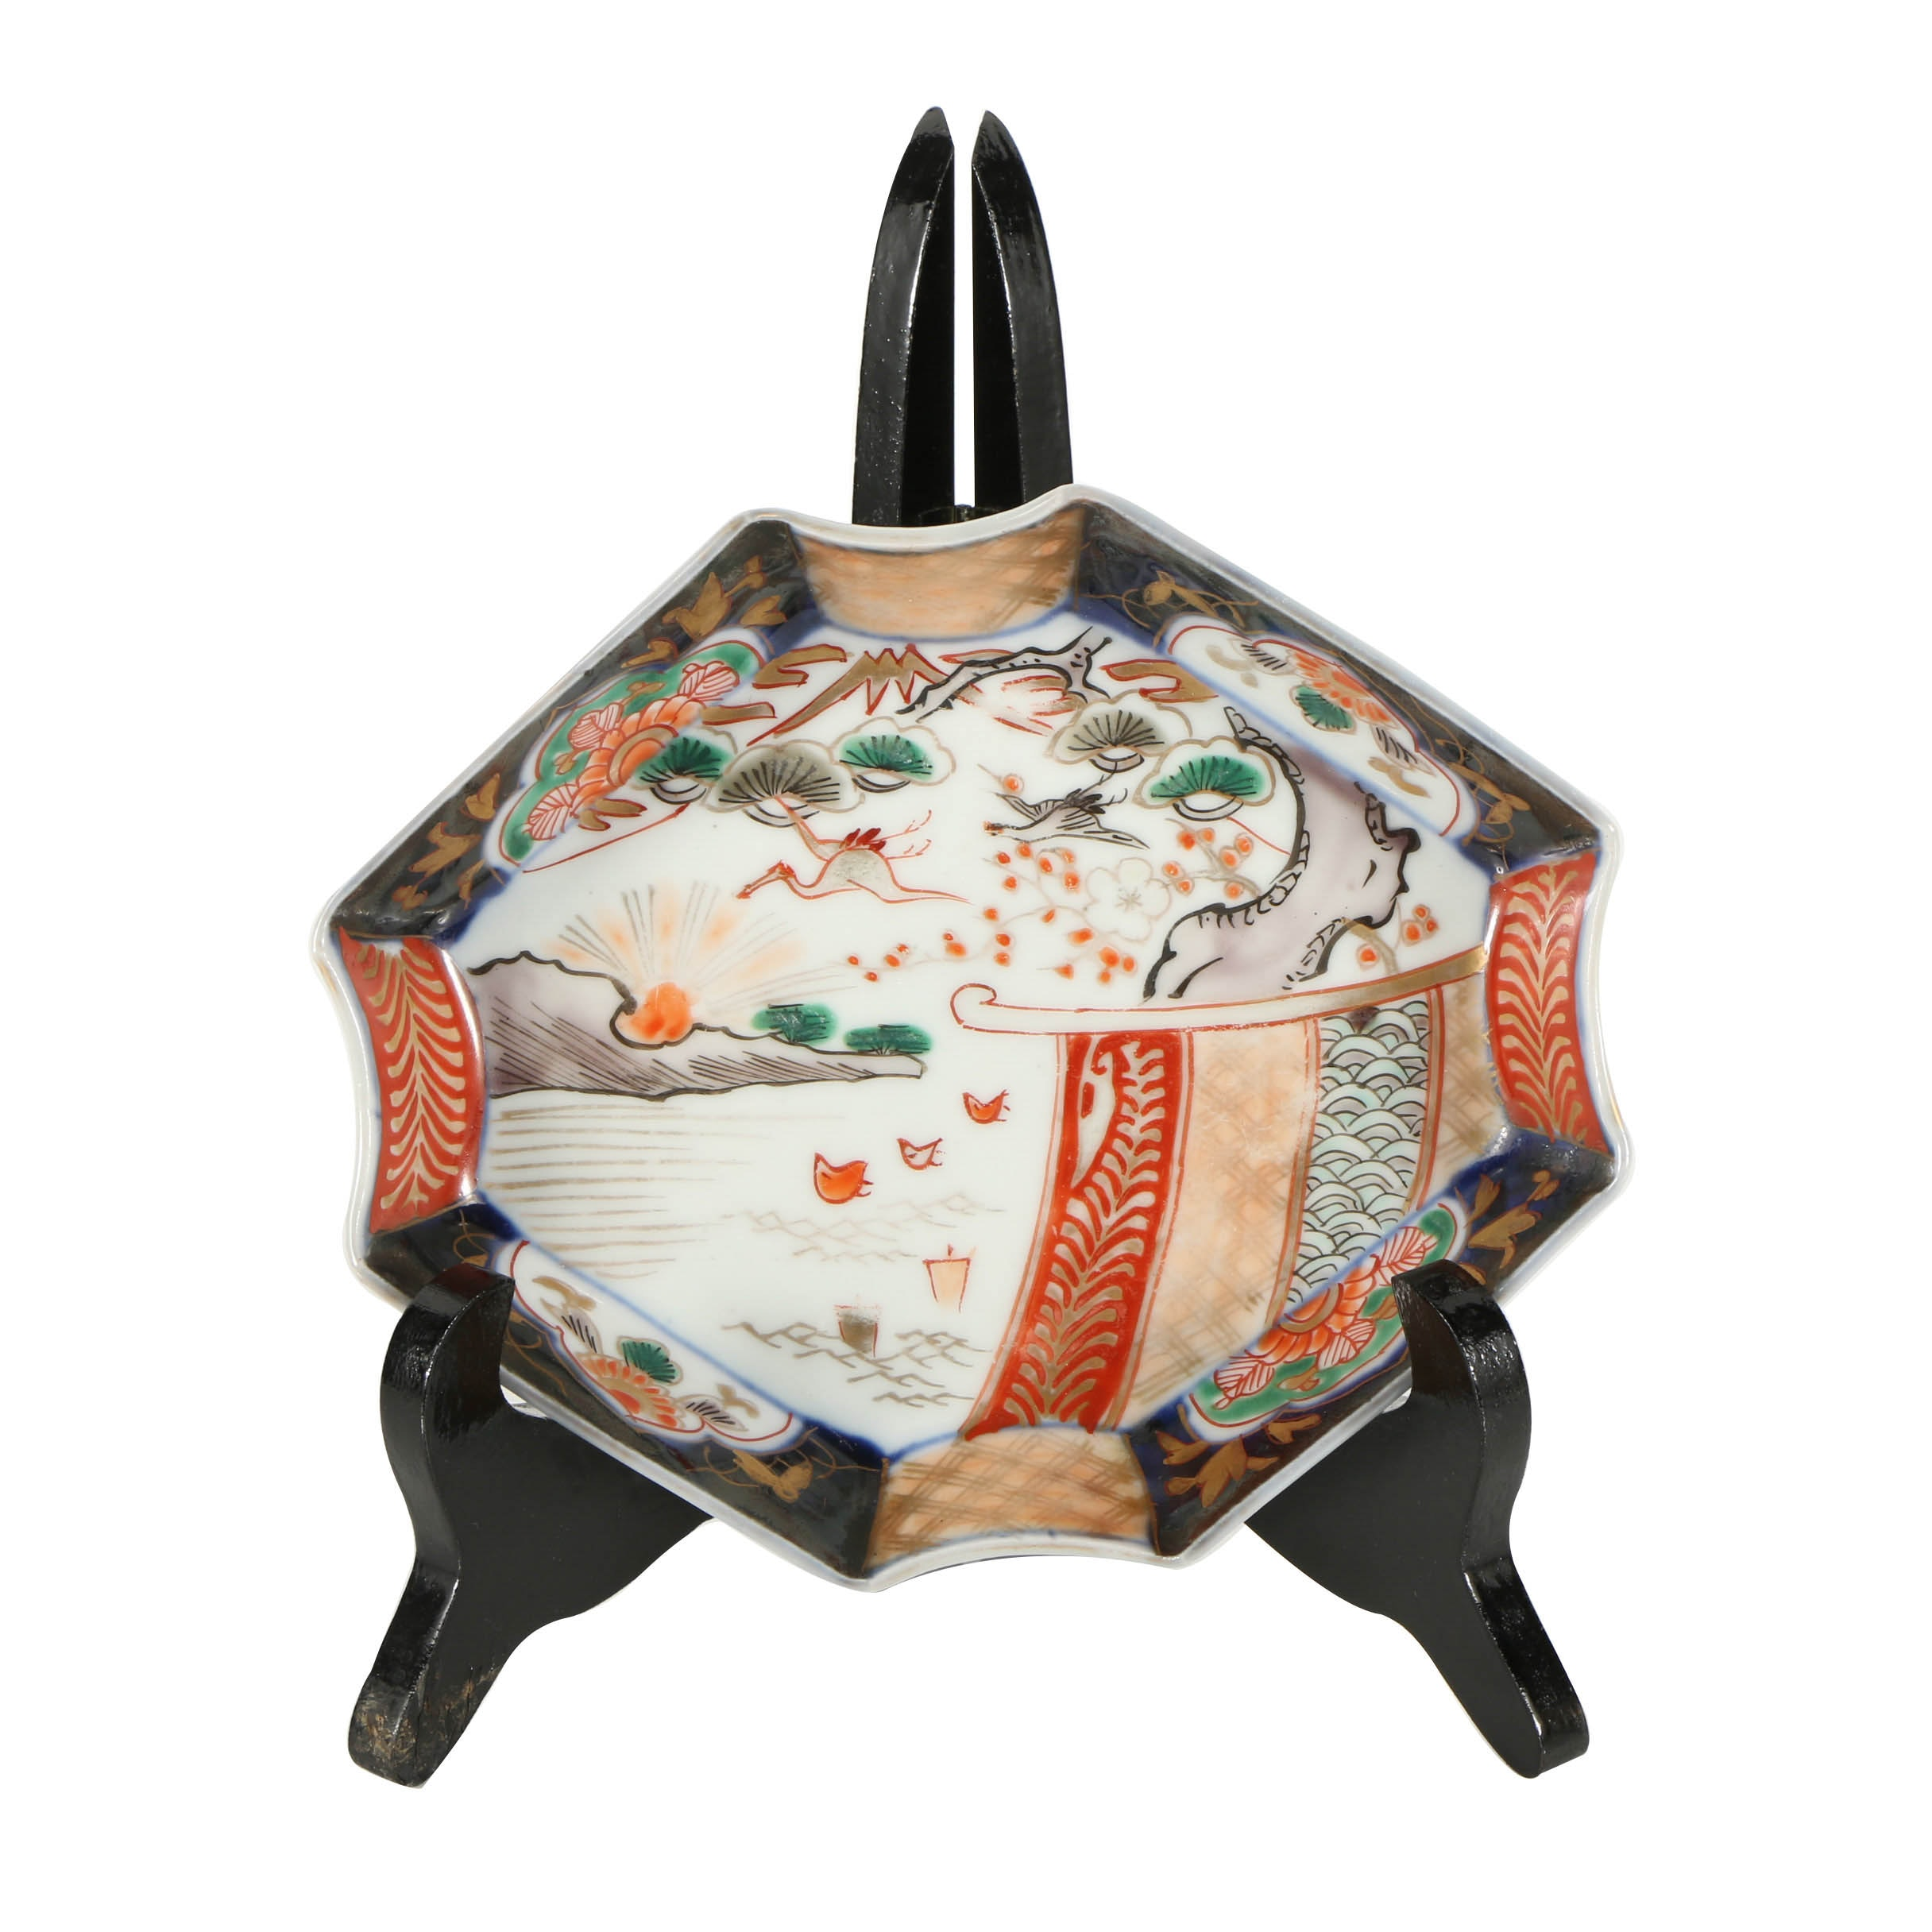 Japanese Imari Porcelain Plate with Lacquered Wood Stand